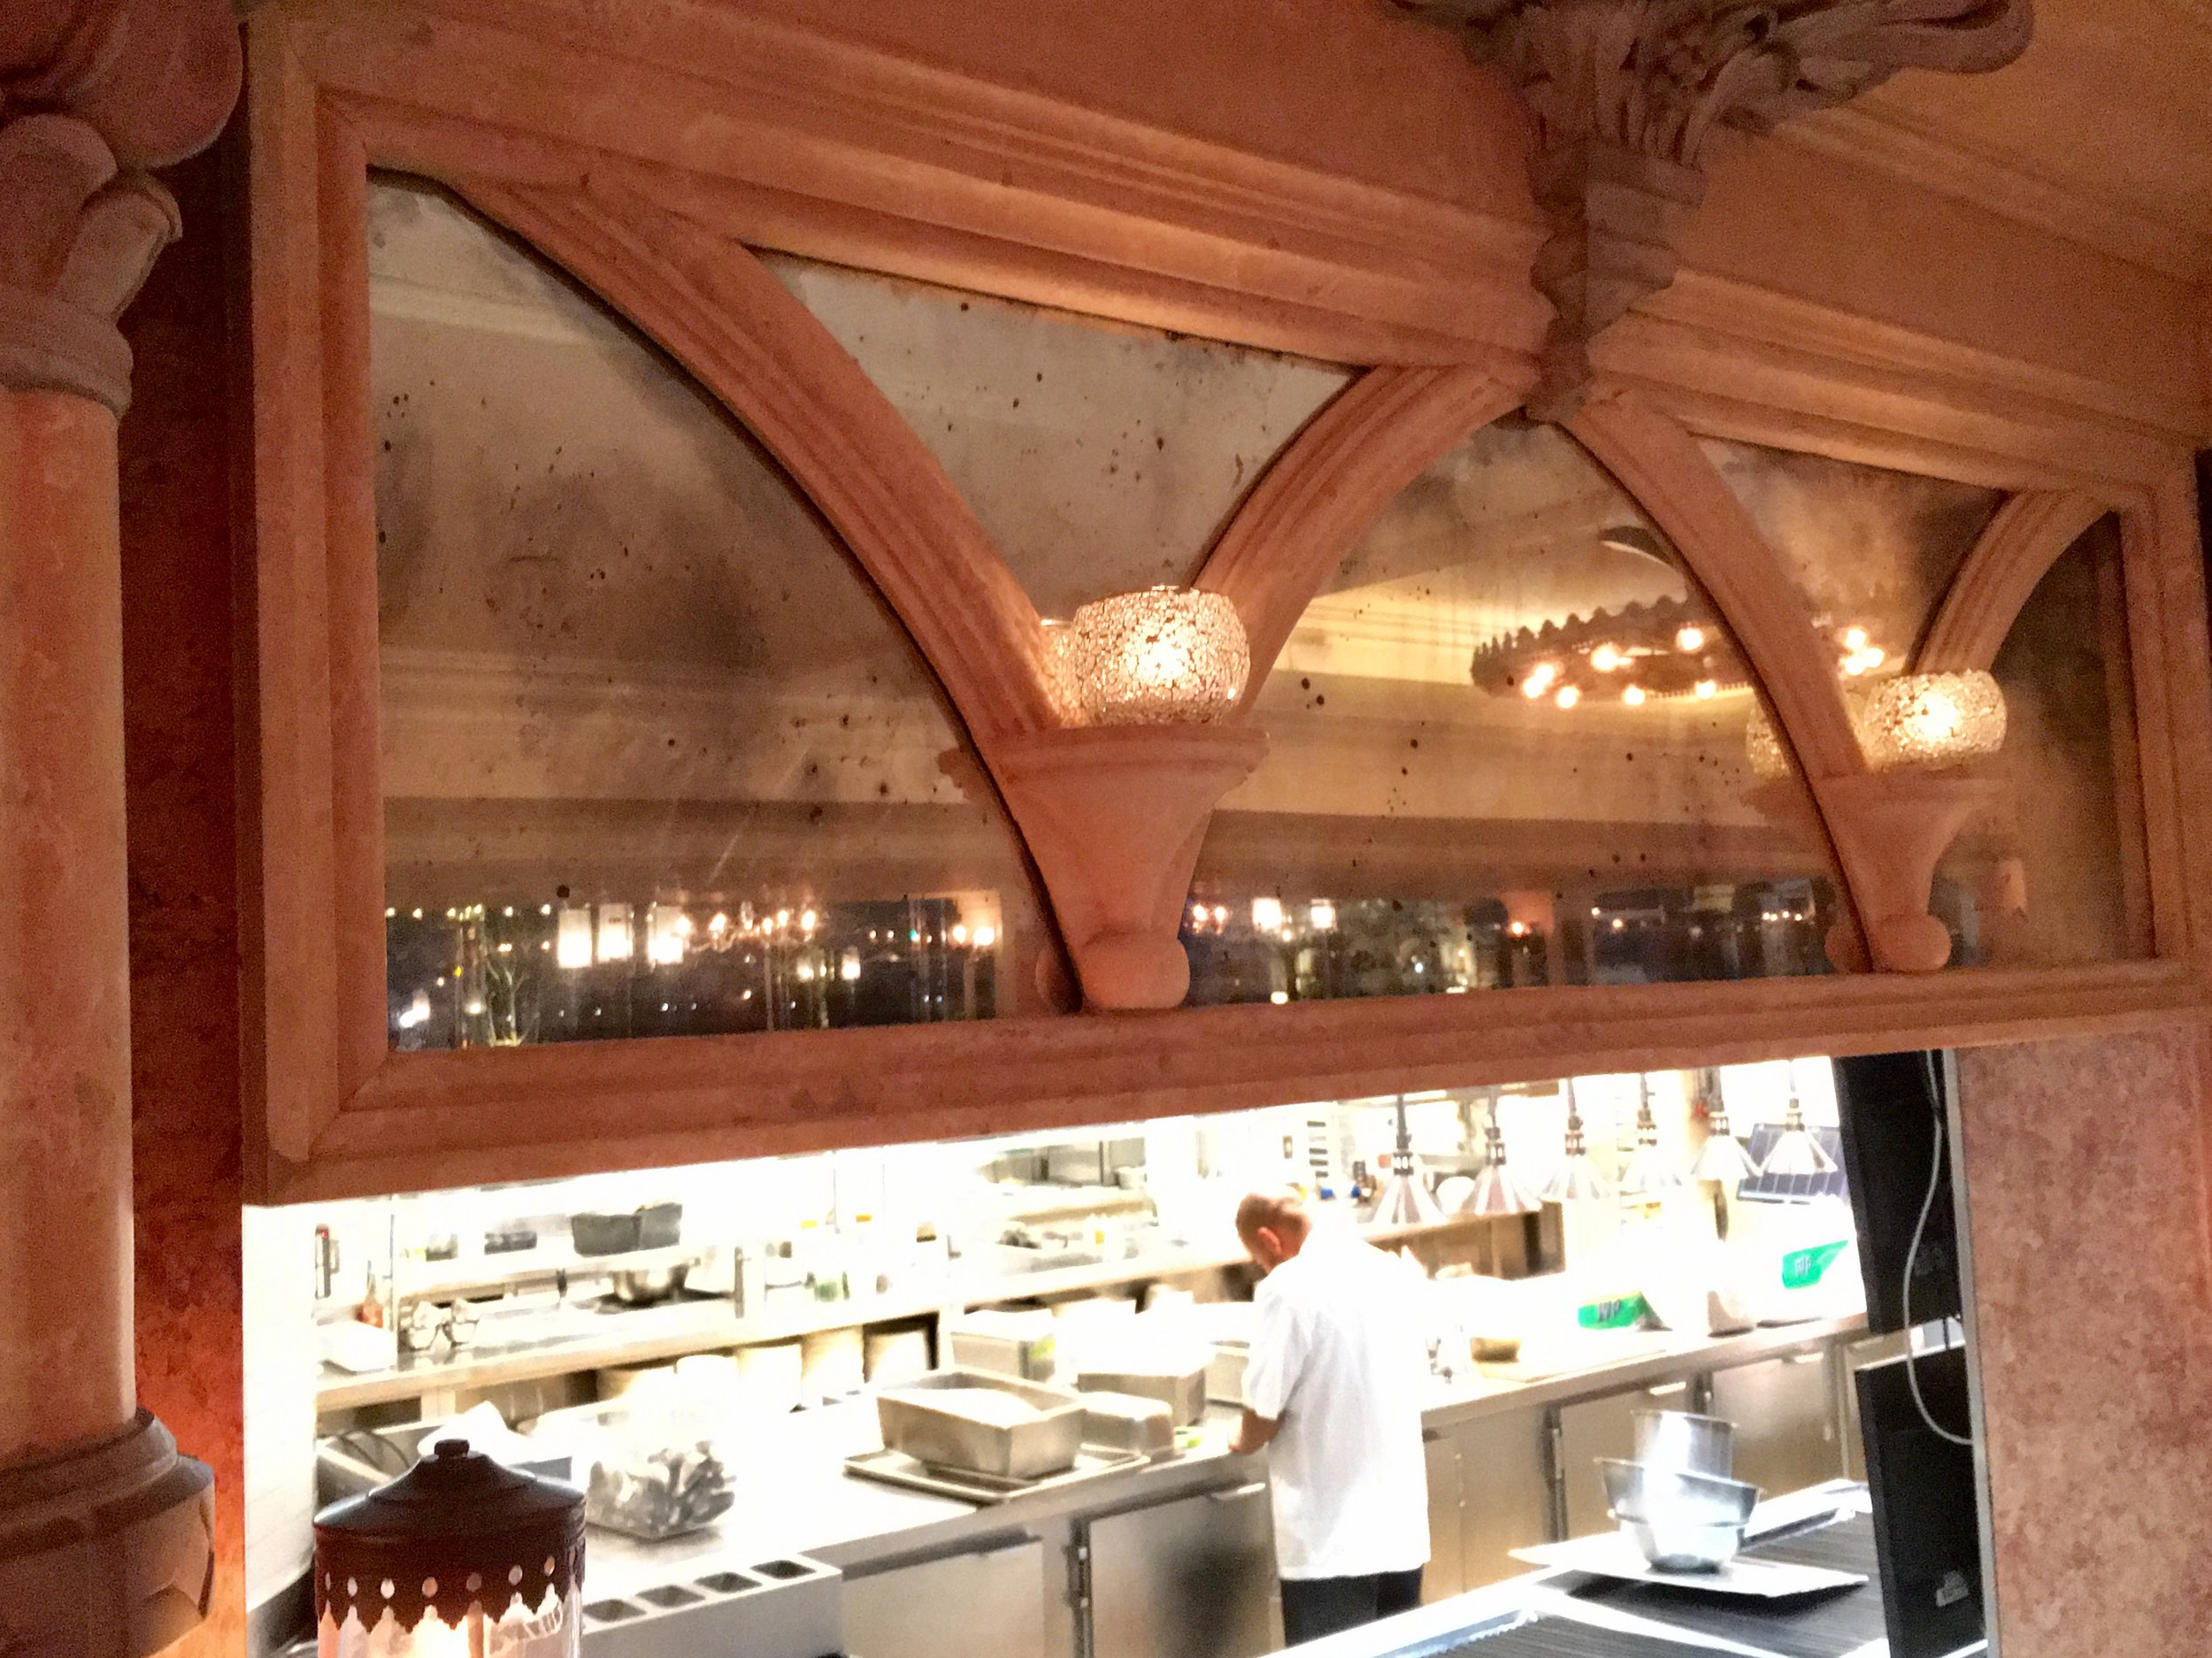 Handsilvered mirrors above open kitchen at Tavern on the Green Restaurant, NYC